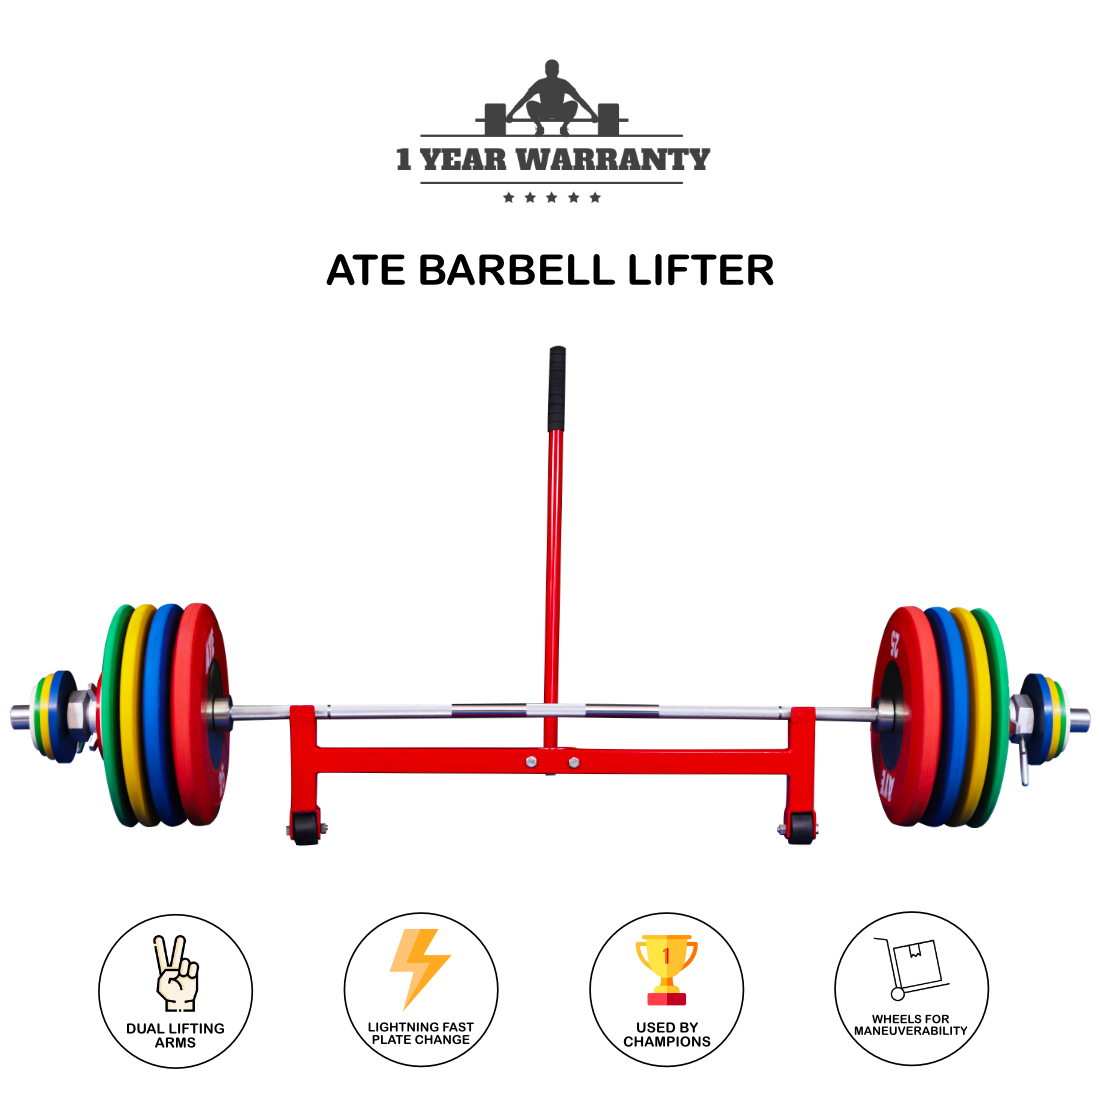 ATE barbell lifter